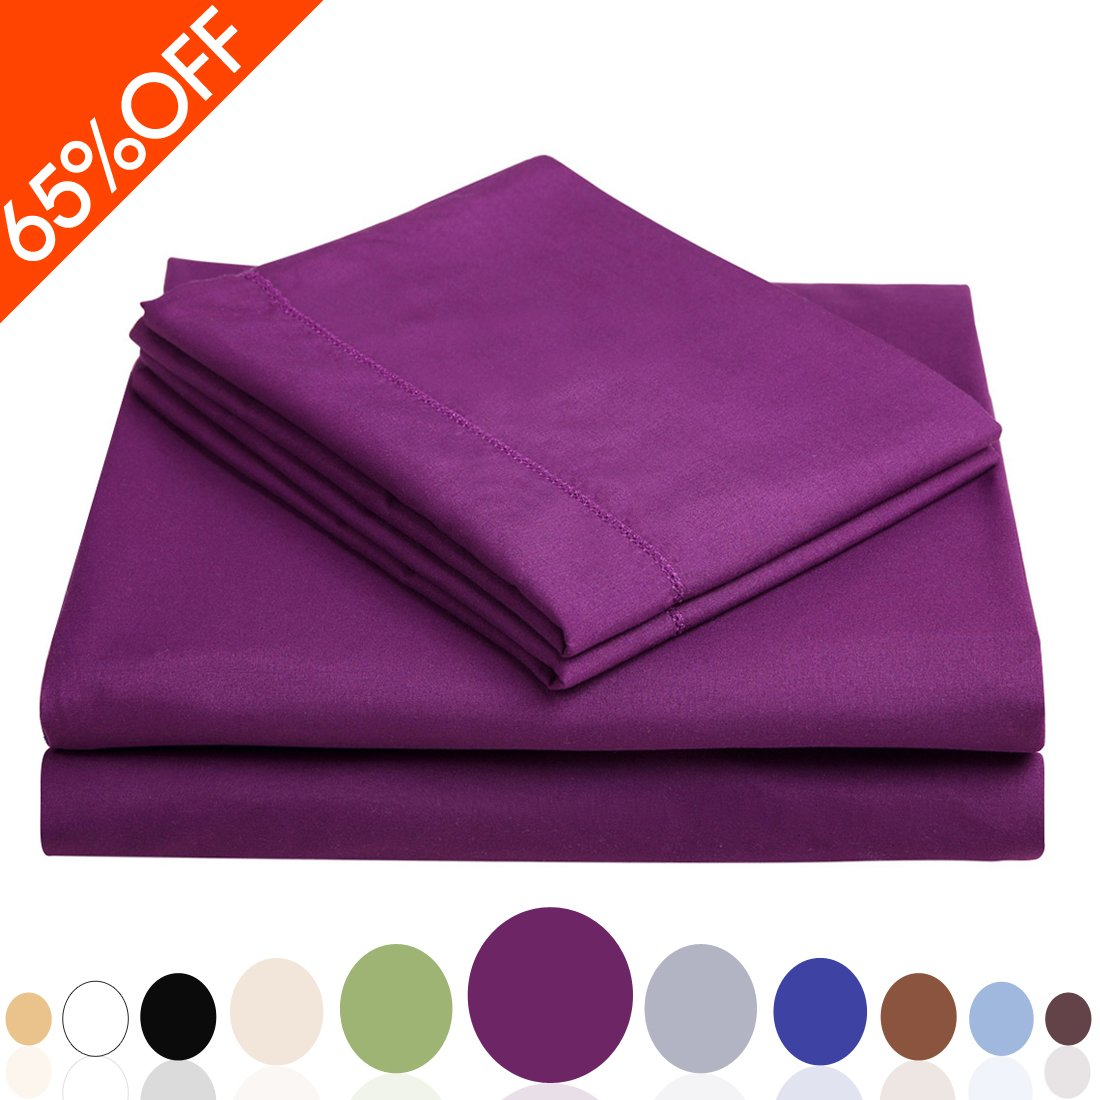 Balichun Deep Pocket Bed Sheet Set Brushed Hypoallergenic Microfiber 1800 Bedding Sheets